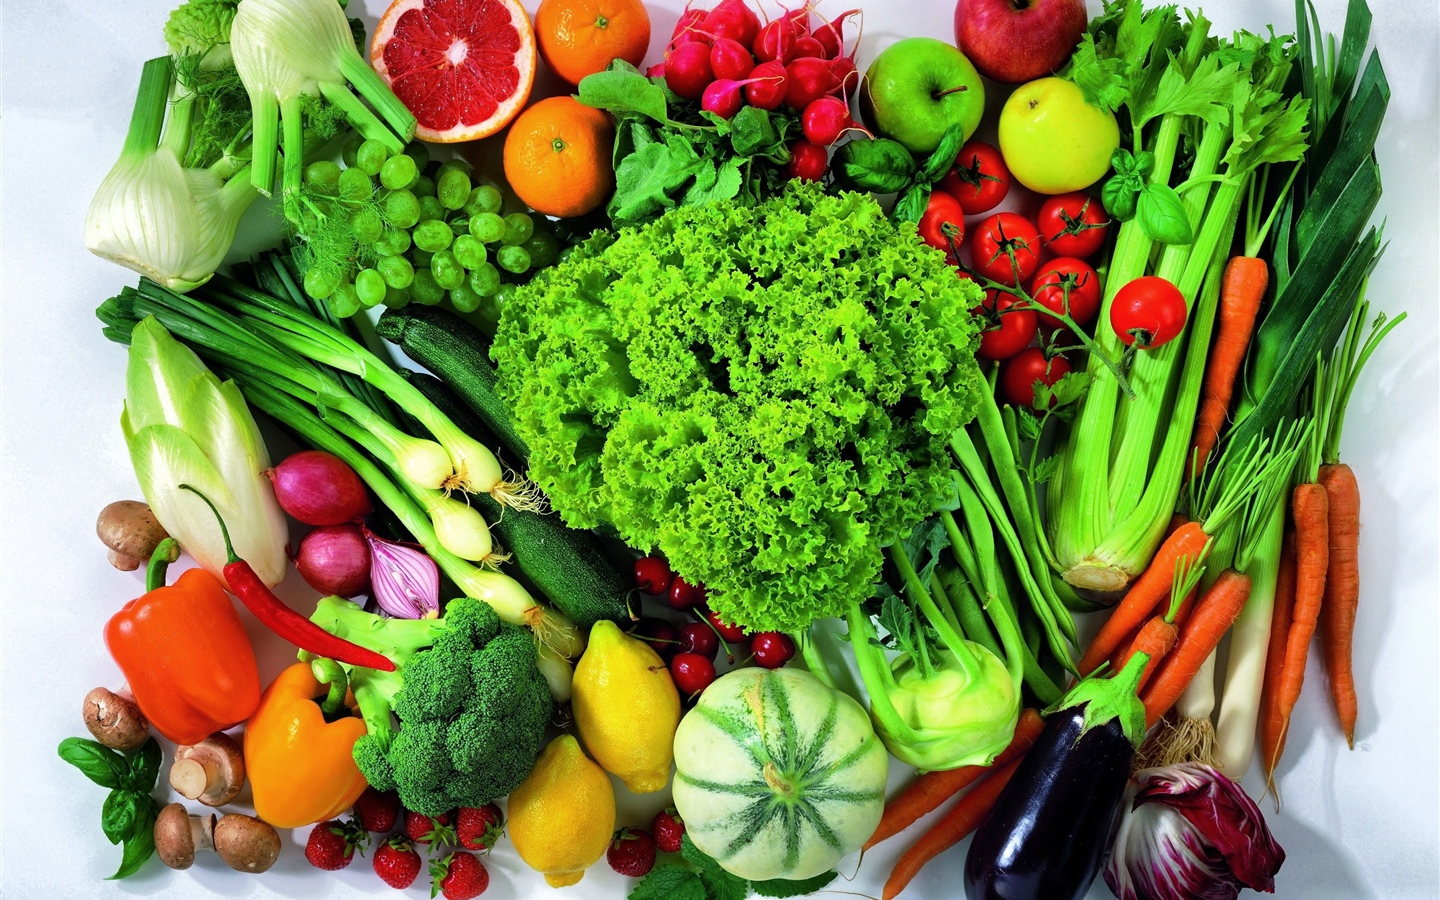 Many kinds of vegetables and fruits 1440x900 wallpaper